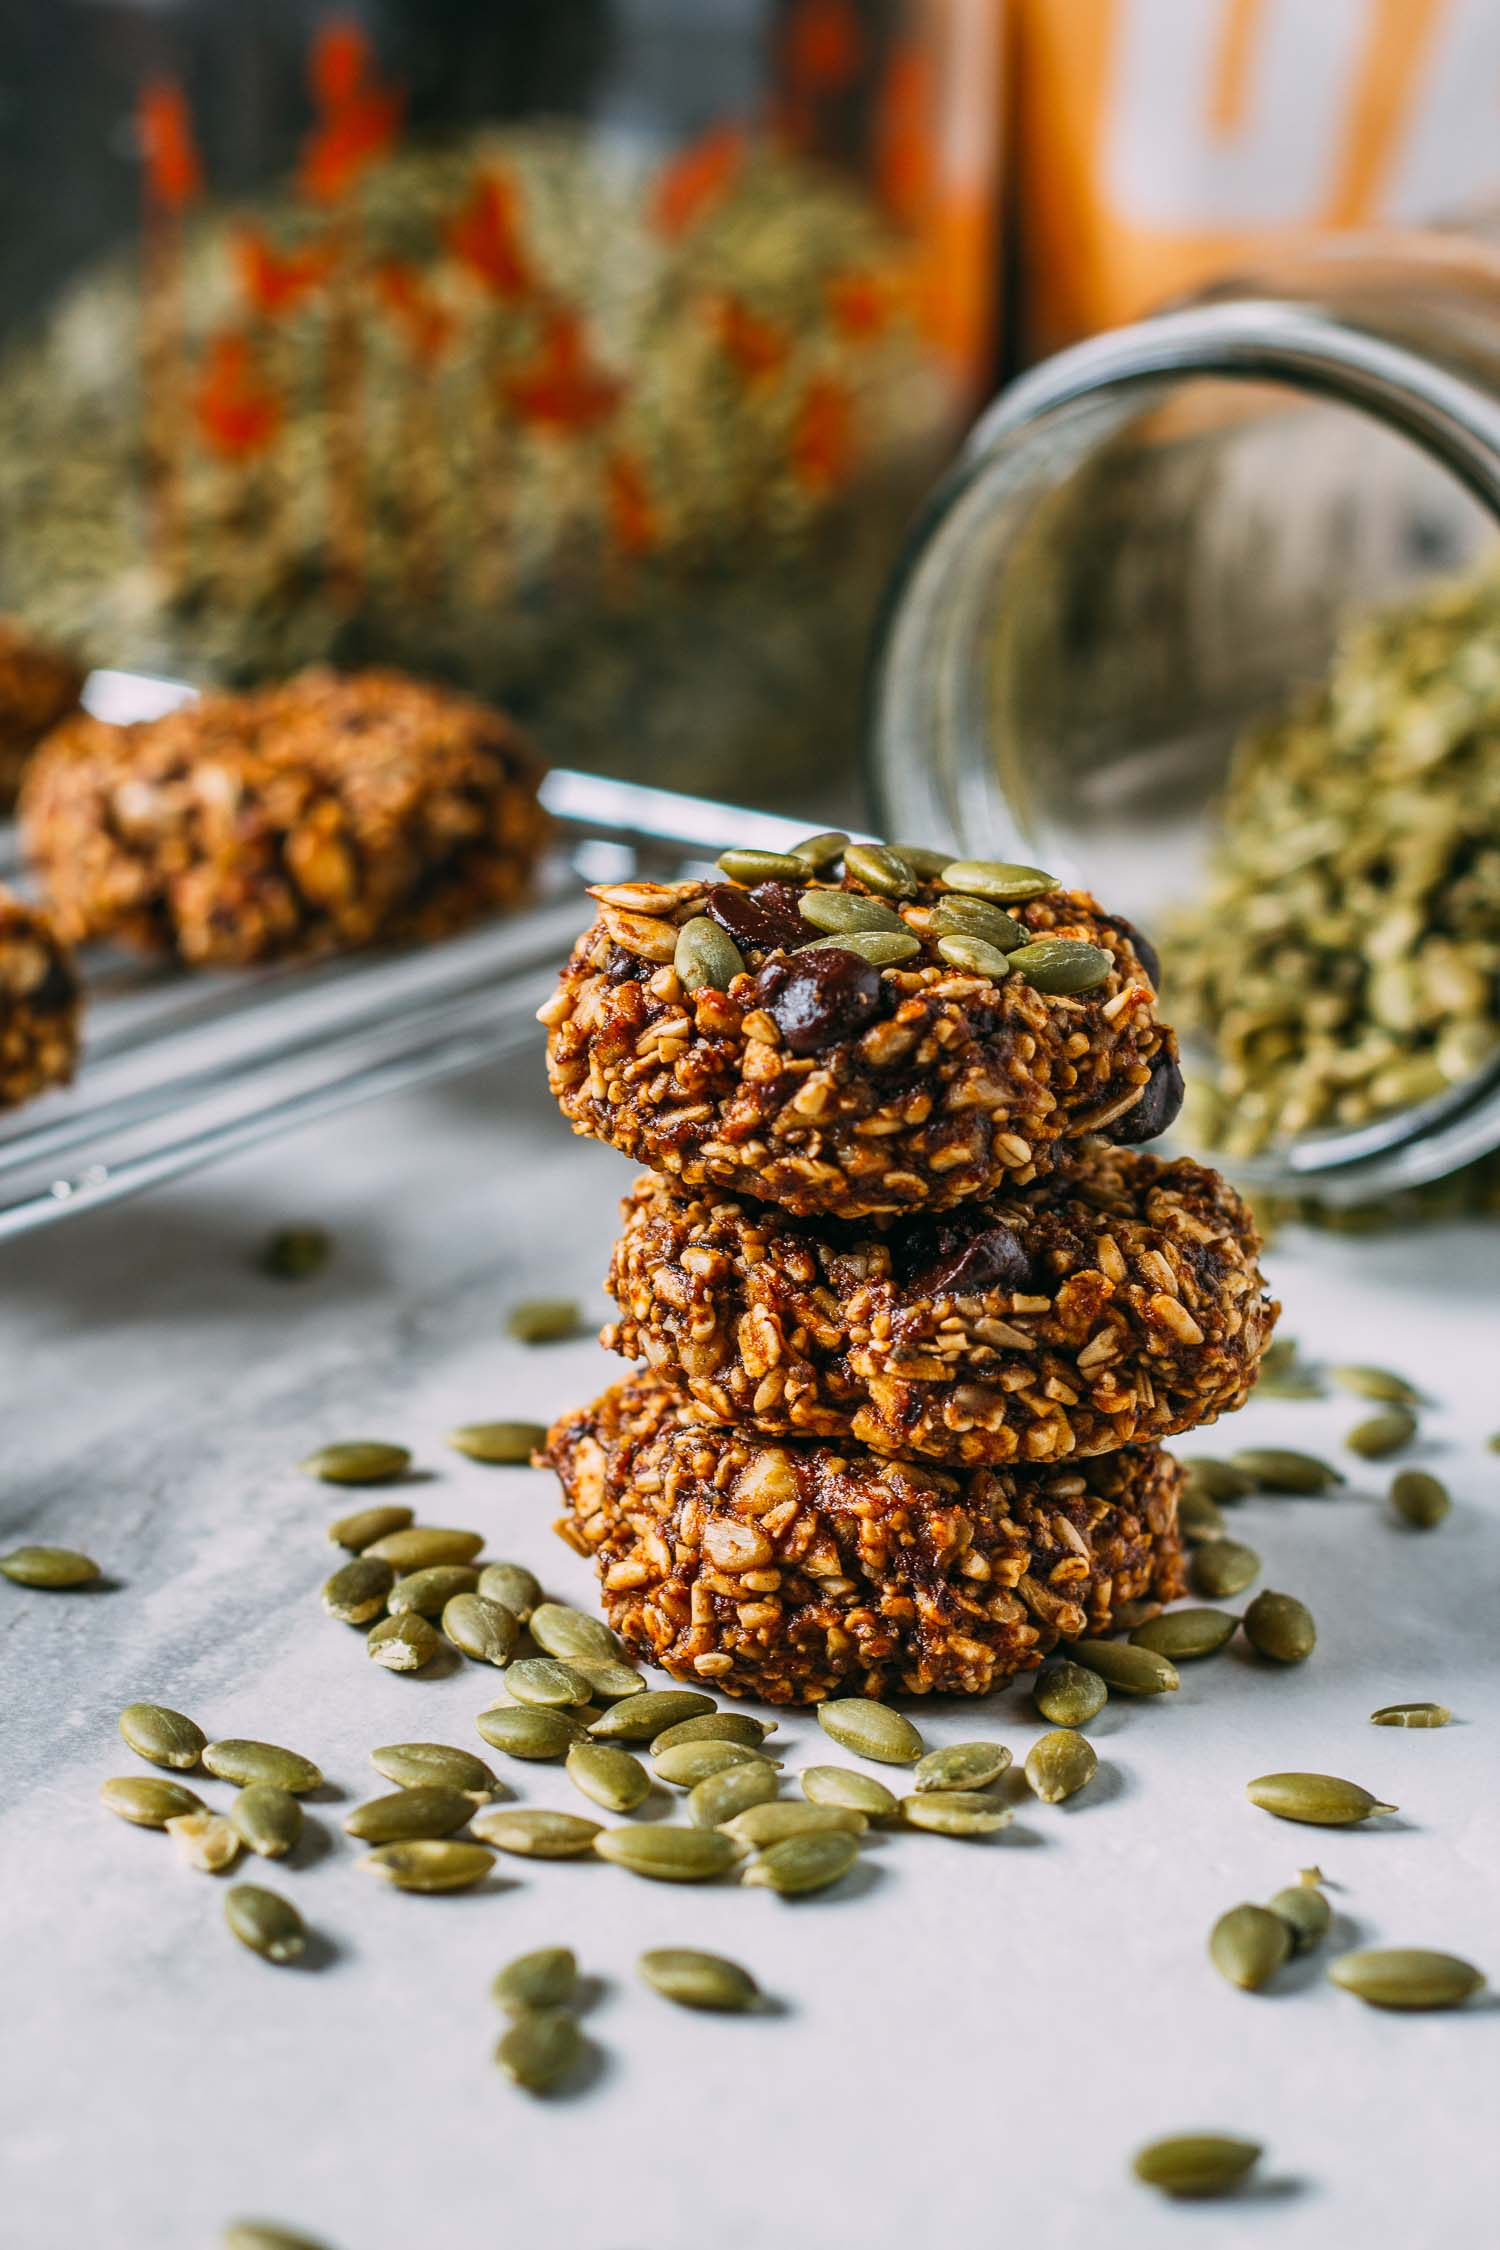 Pumpkin Power Breakfast Worthy Cookies #gluten-free #vegan #wfpb #wfpbno #plant-based #recipe #dessert #recipes #cookies #breakfast #cookie #pumpkin #walnuts #flax #healthy #make-ahead #snack #treat #lunch #fall #thanksgiving #halloween #granola #healthy #chocolate chip